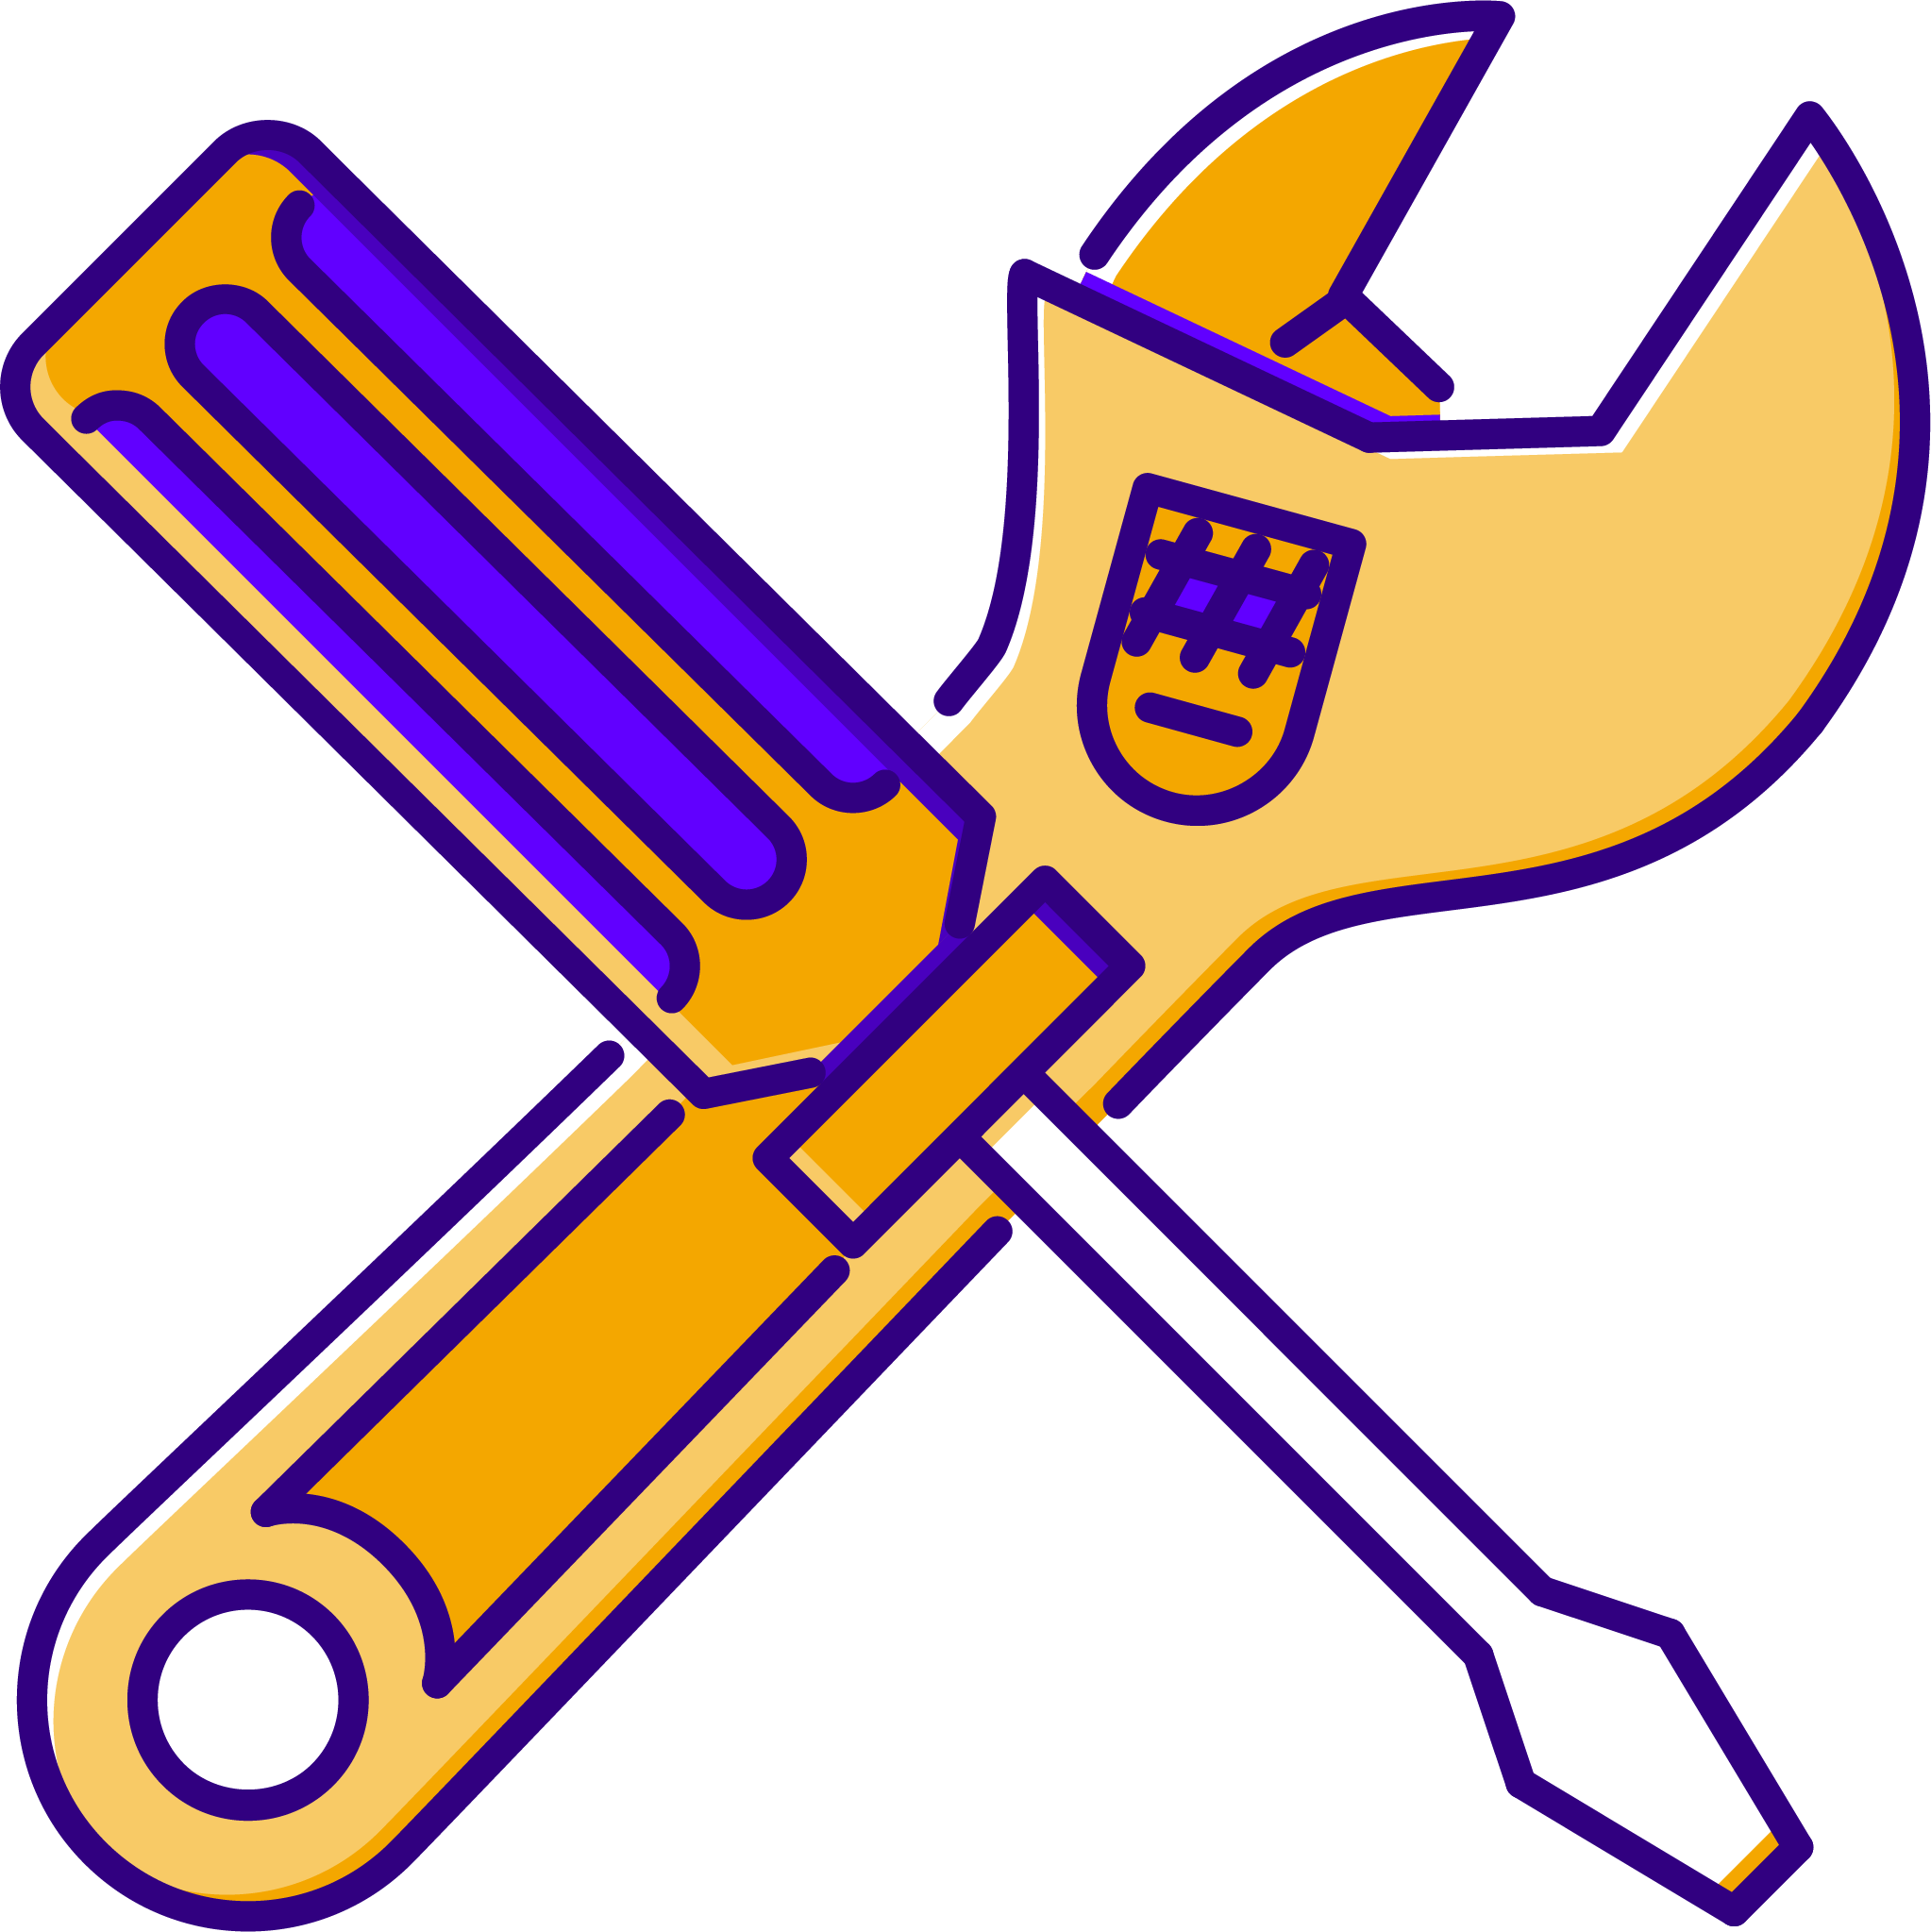 A wrench and screwdriver